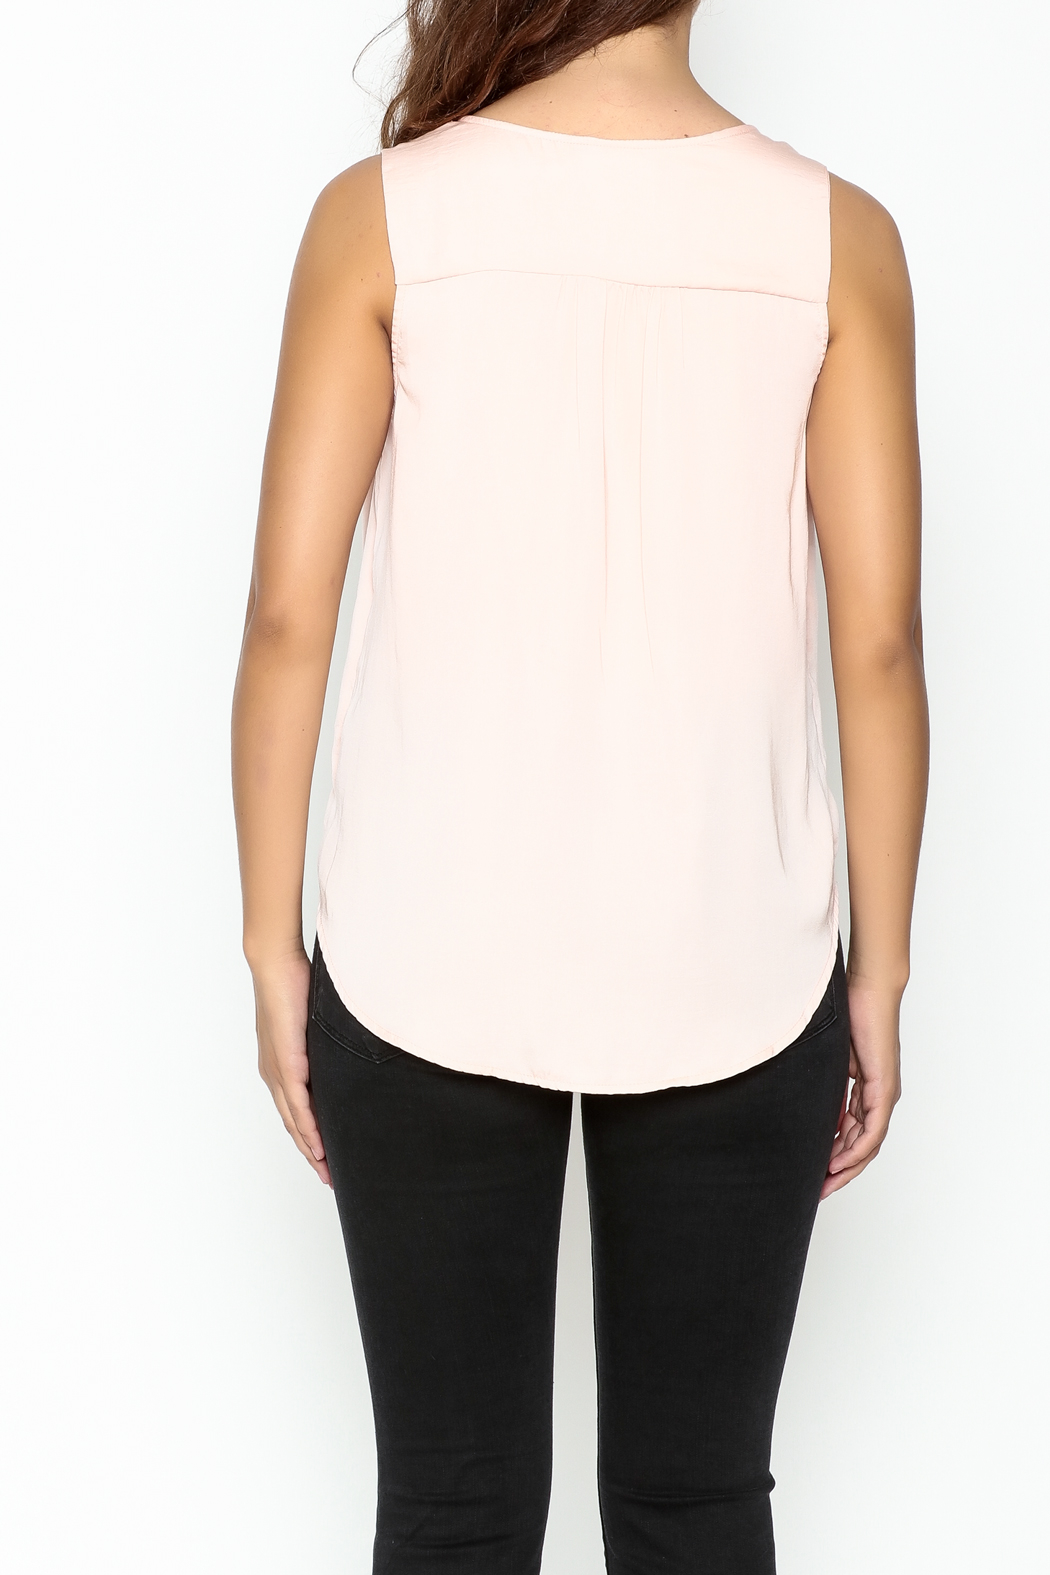 Do & Be Lace Inset Top - Back Cropped Image